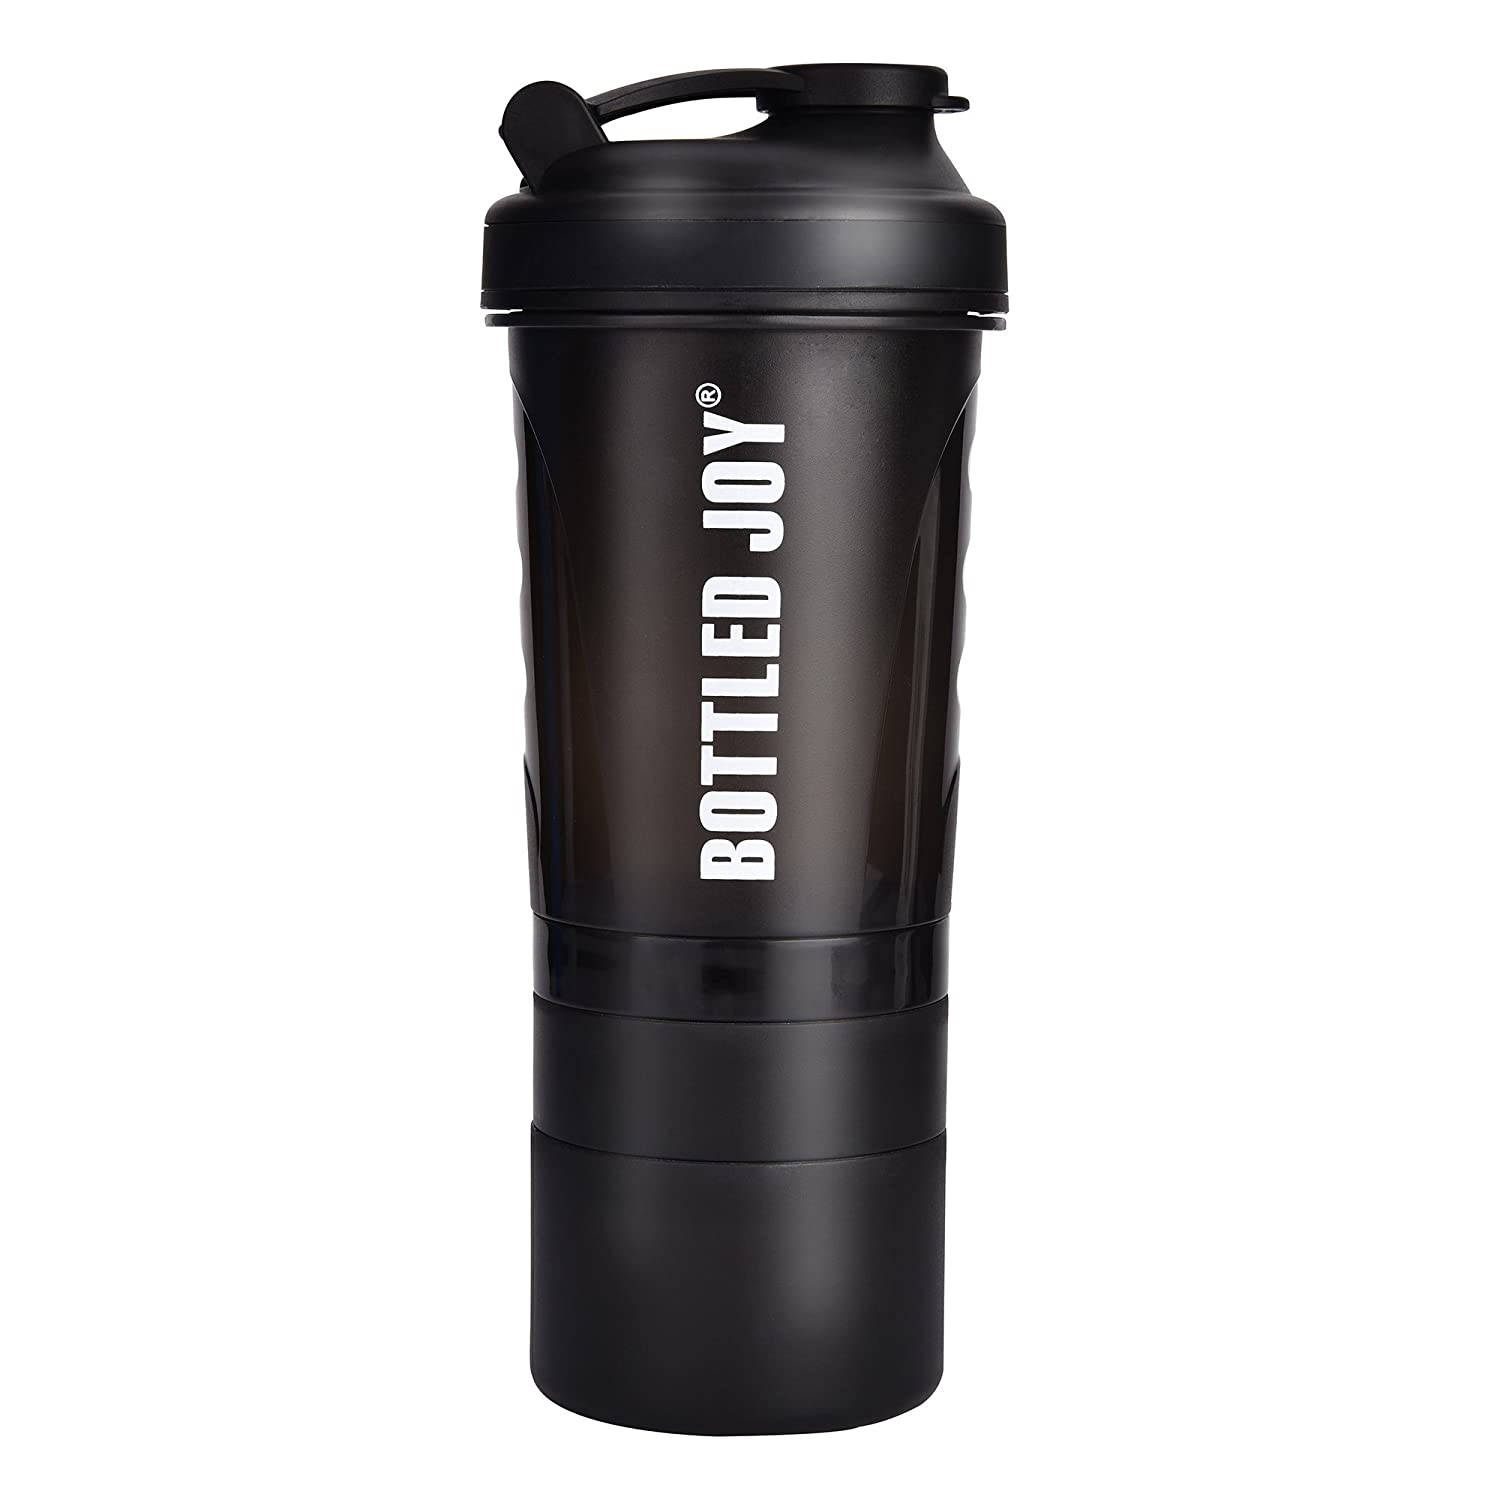 BOTTLED JOY Protein Shaker Bottle with 3-Layer Twist and Lock Storage, 100% BPA-Free Leak Proof SportMixer Fitness Sports Nutrition Supplements Non-slip Mix Shake Bottle 20oz 600ml (Black)